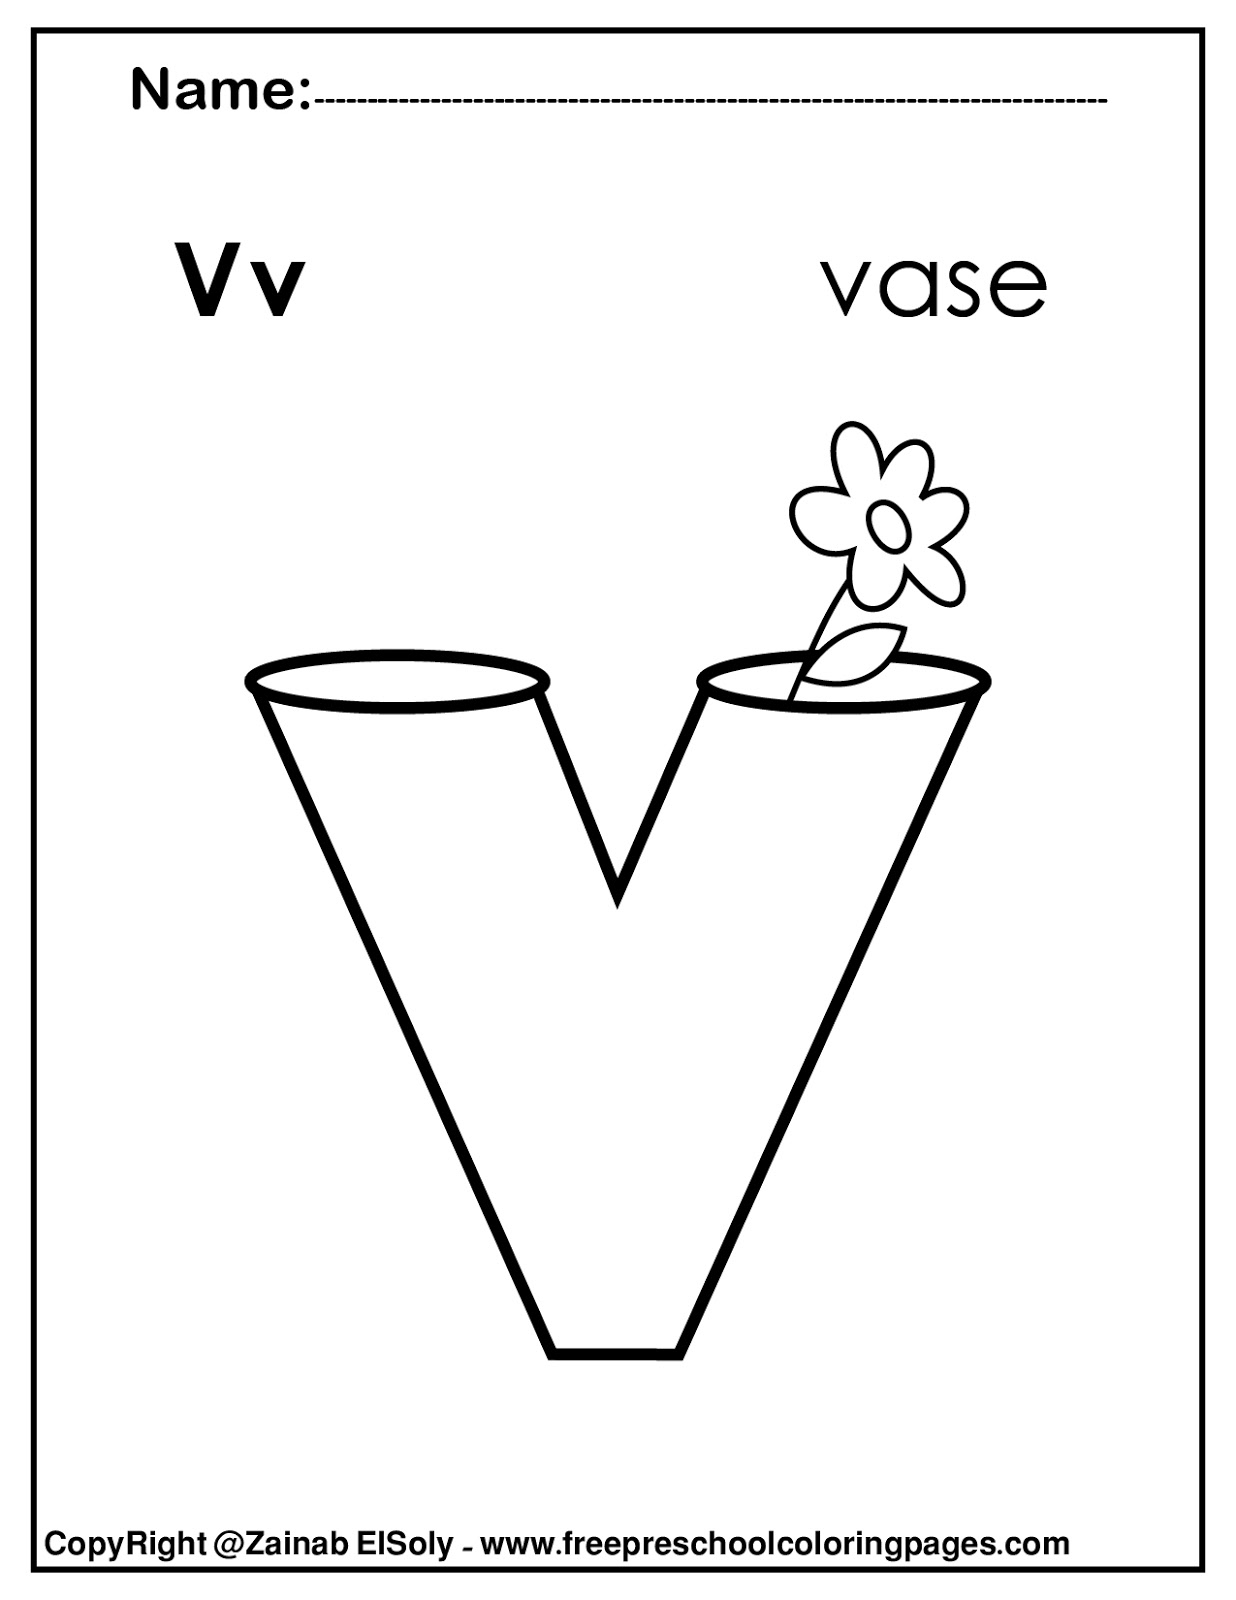 Letter V Coloring Pages - GetColoringPages.com   1600x1236